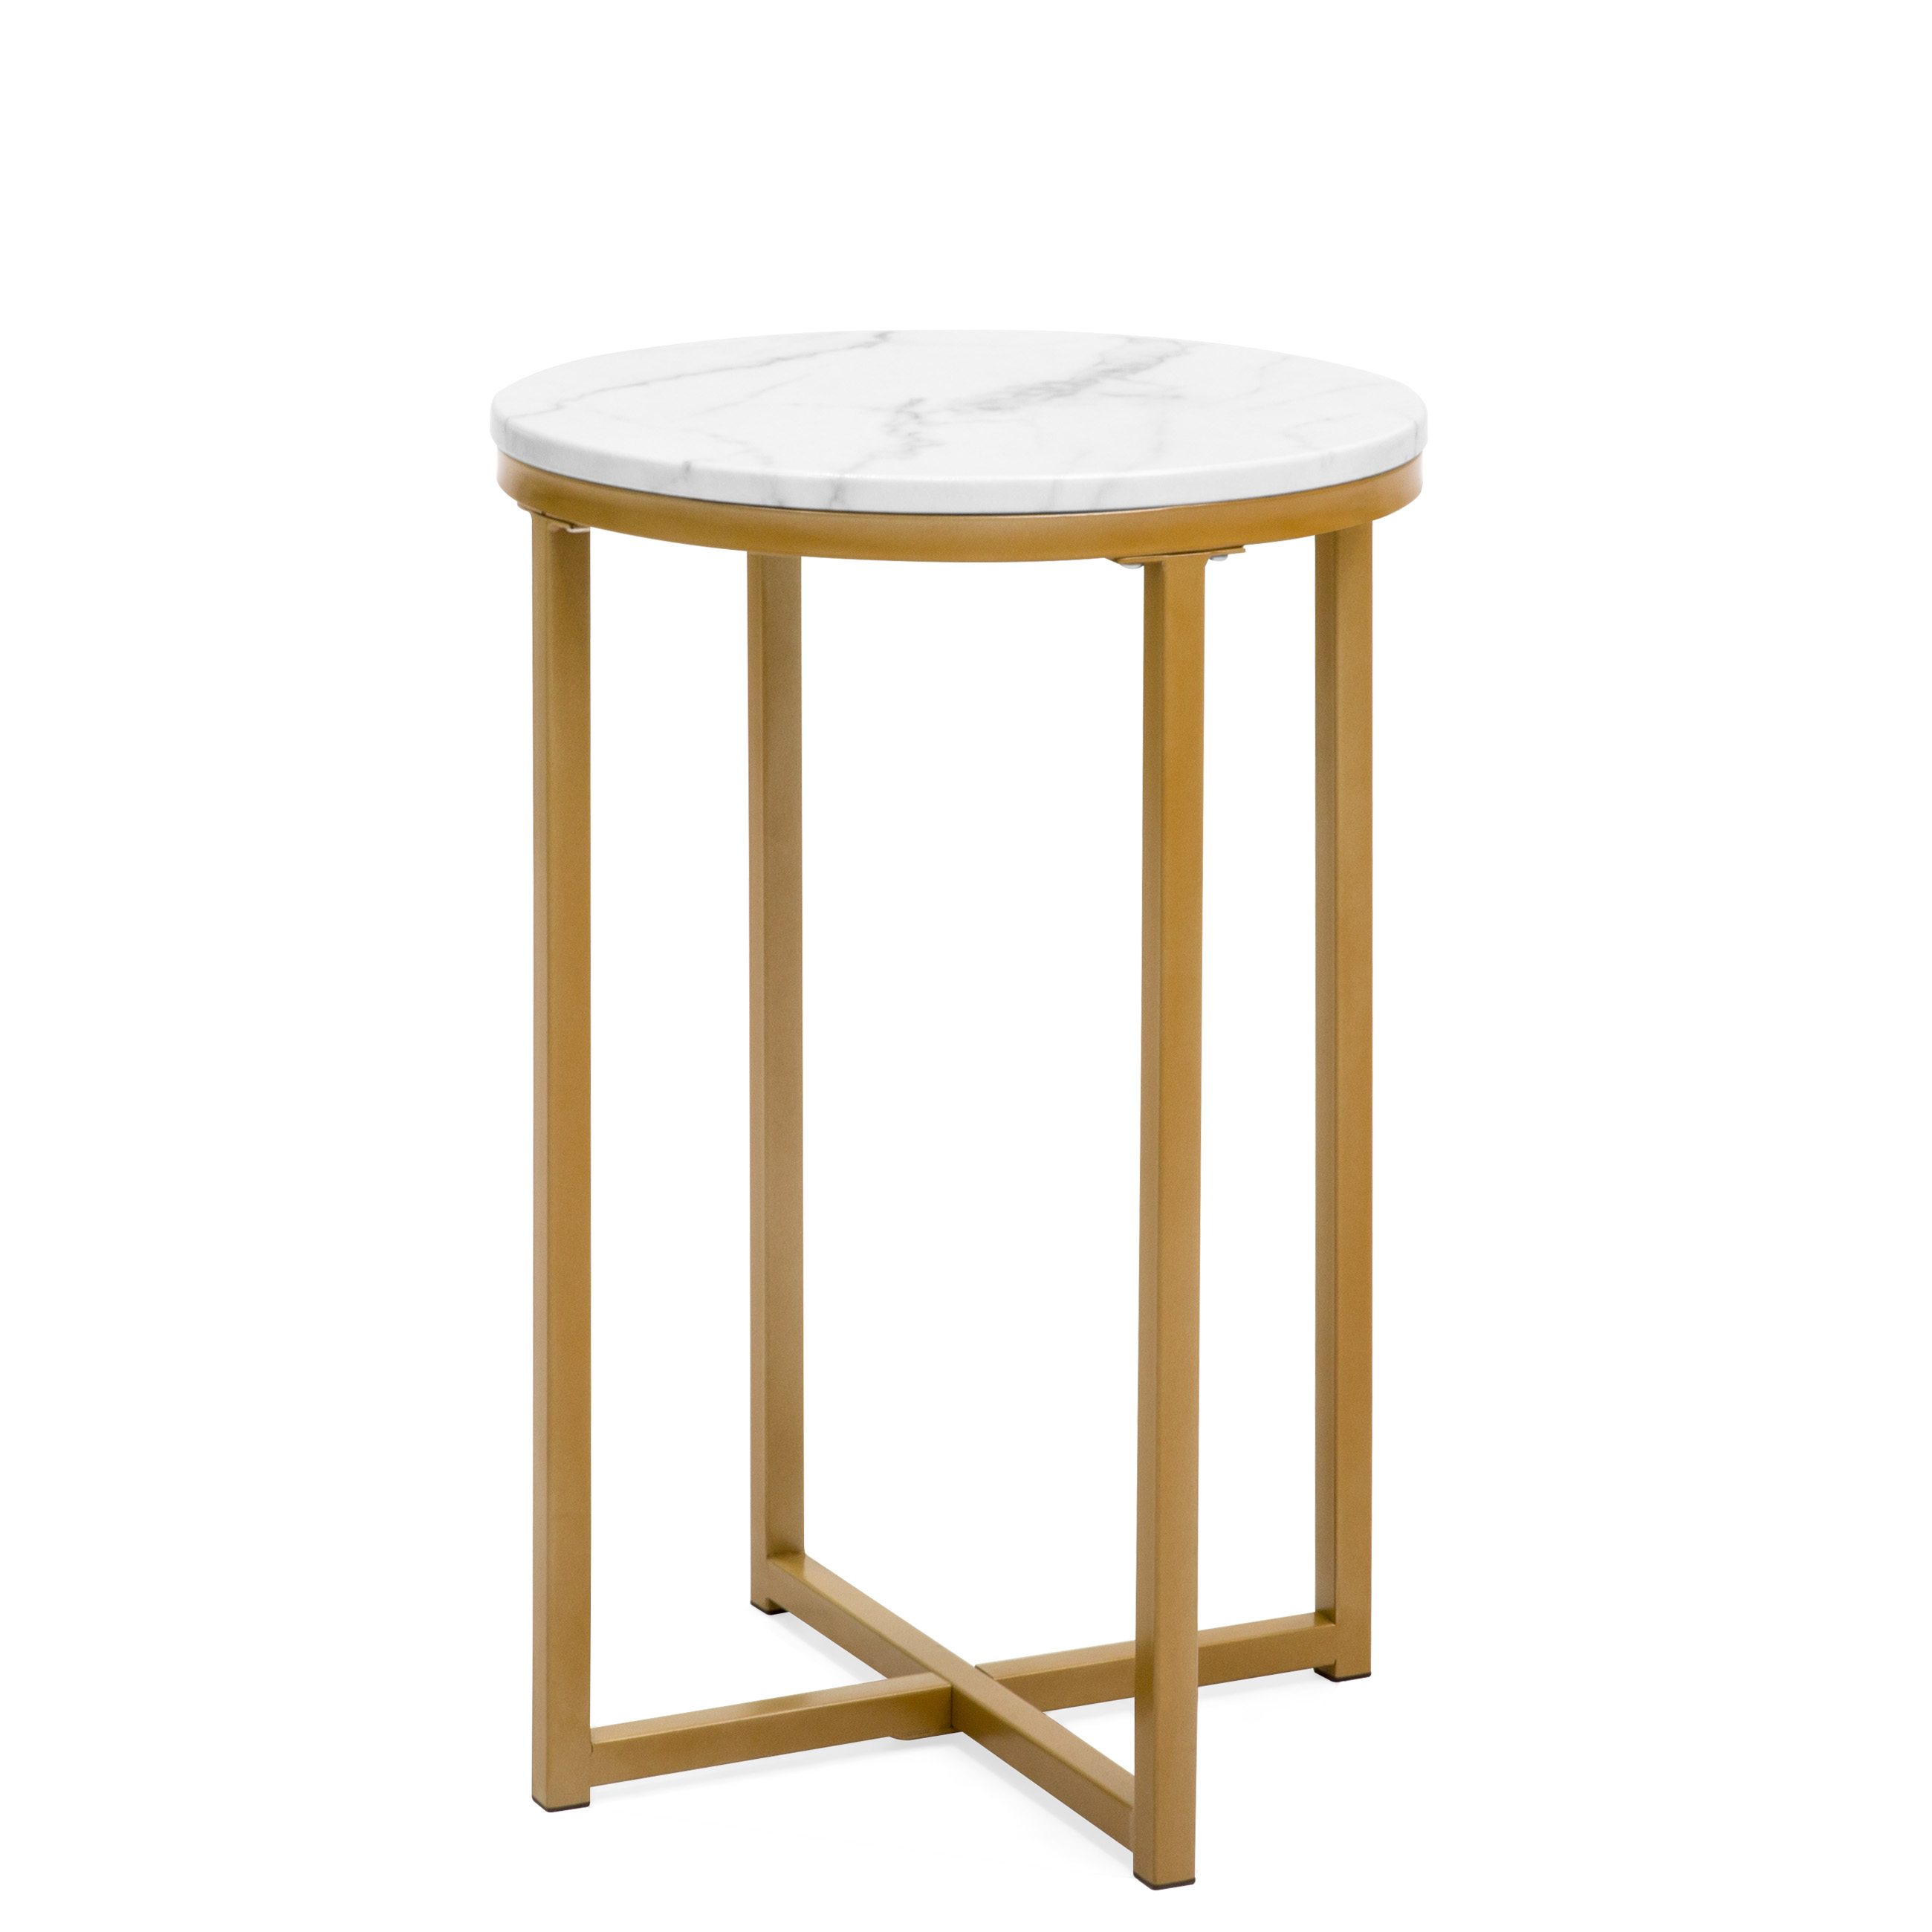 best choice products modern living room round side end accent gold table coffee nightstand metal frame faux marble top white blue striped curtains small patio reclaimed wood